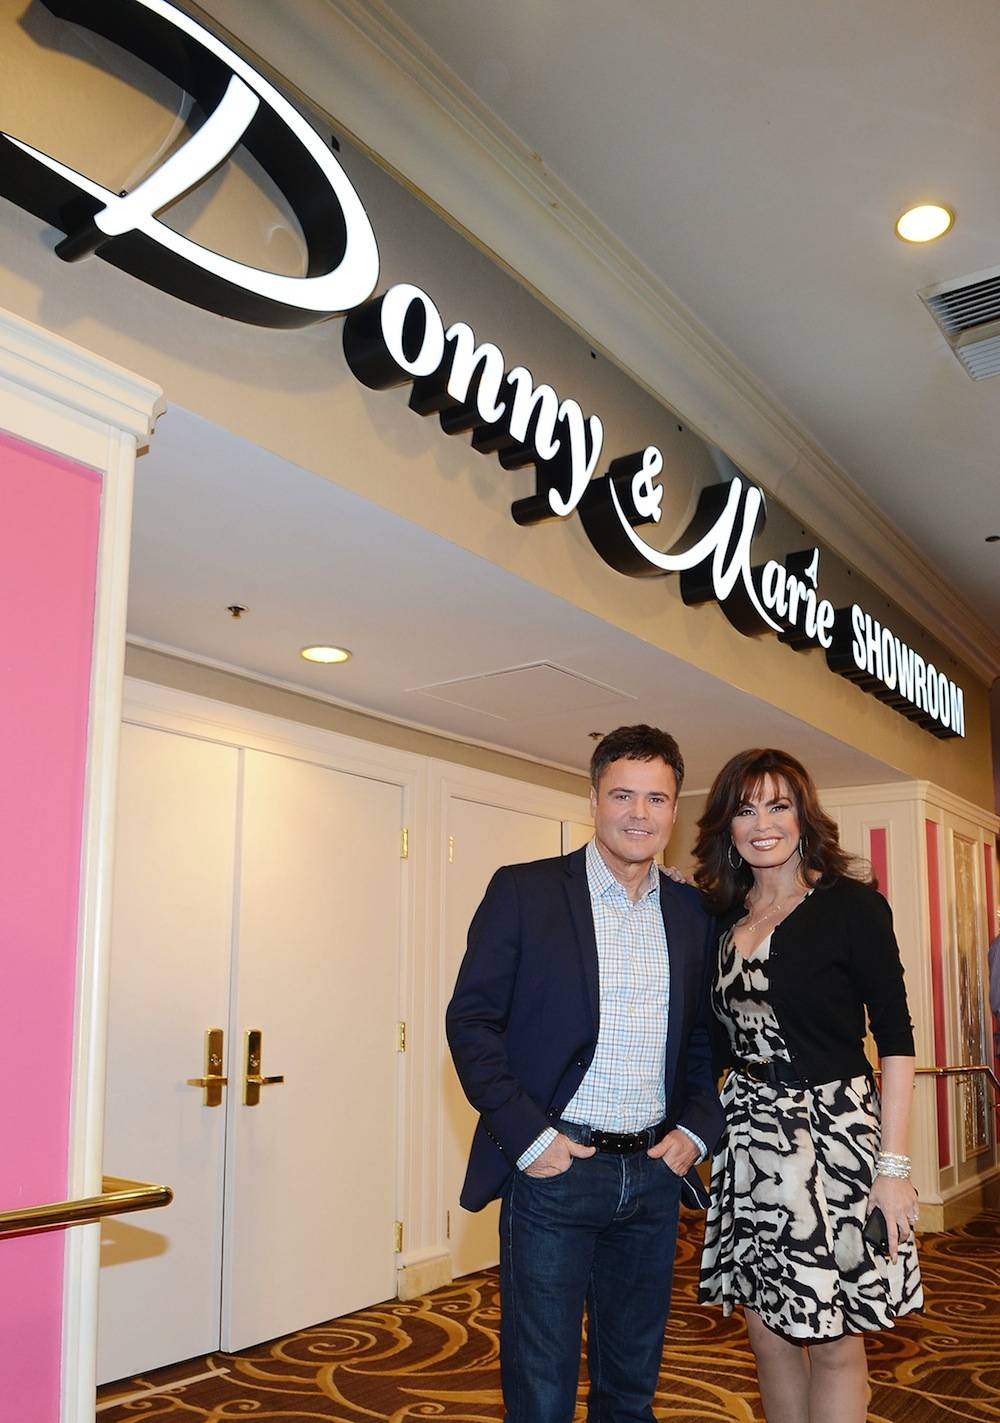 Donny & Marie Osmond Celebrate The Renaming Of Their Showroom At Flamingo Las Vegas To The Donny & Marie Showroom